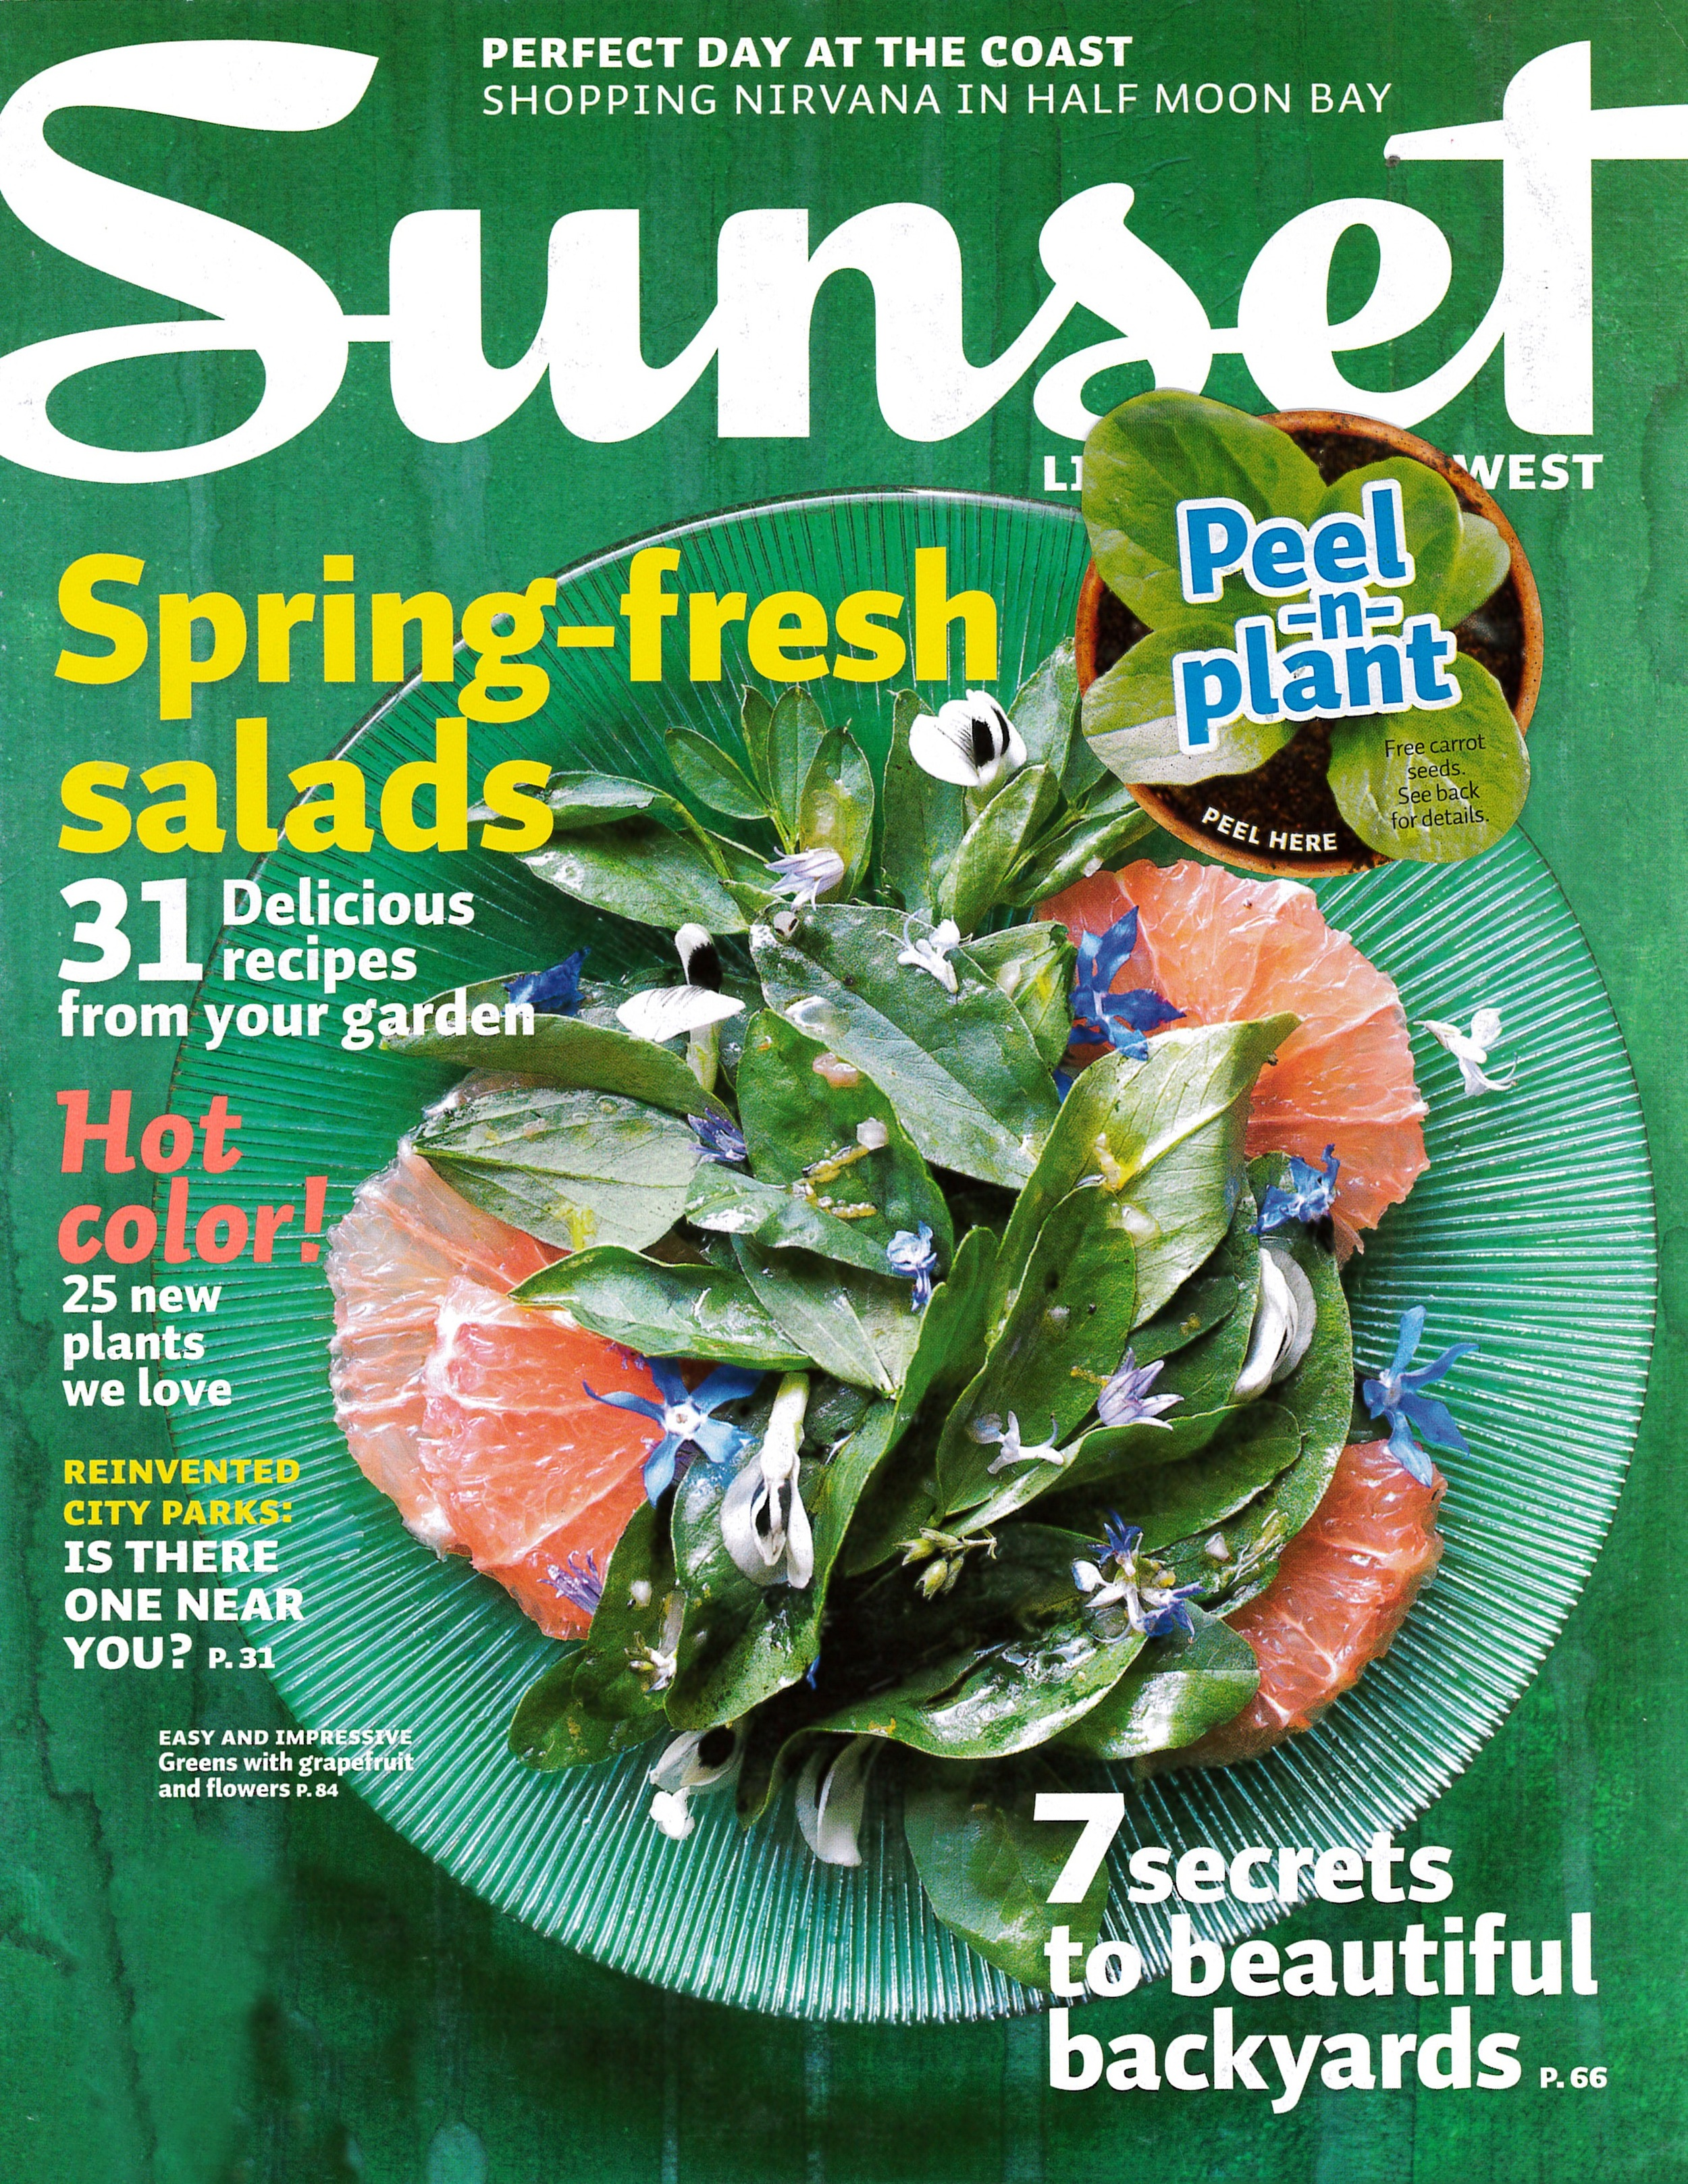 e23c0-sunset-2011-04-cover.jpg